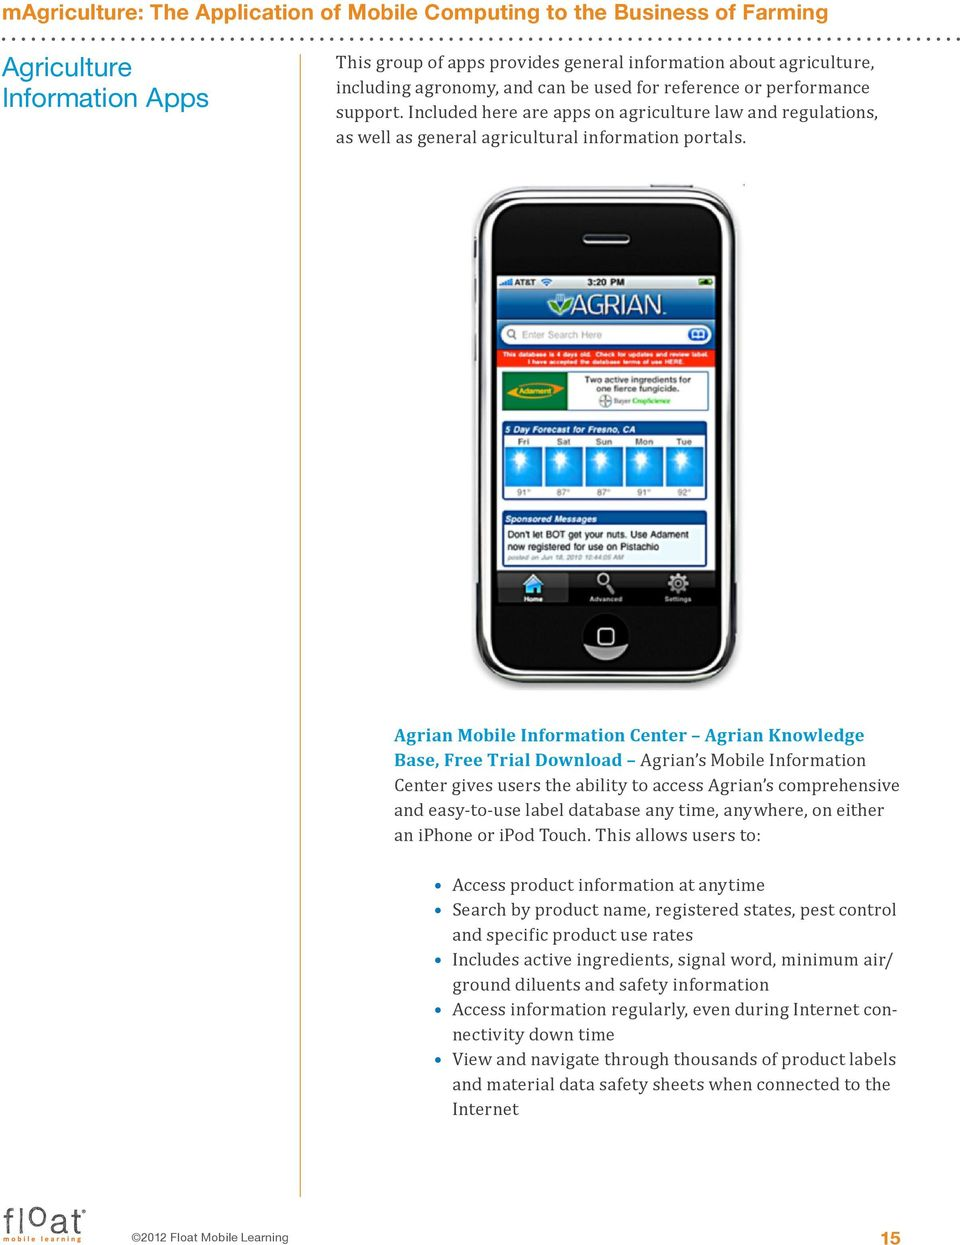 Agrian Mobile Information Center Agrian Knowledge Base, Free Trial Download Agrian s Mobile Information Center gives users the ability to access Agrian s comprehensive and easy-to-use label database